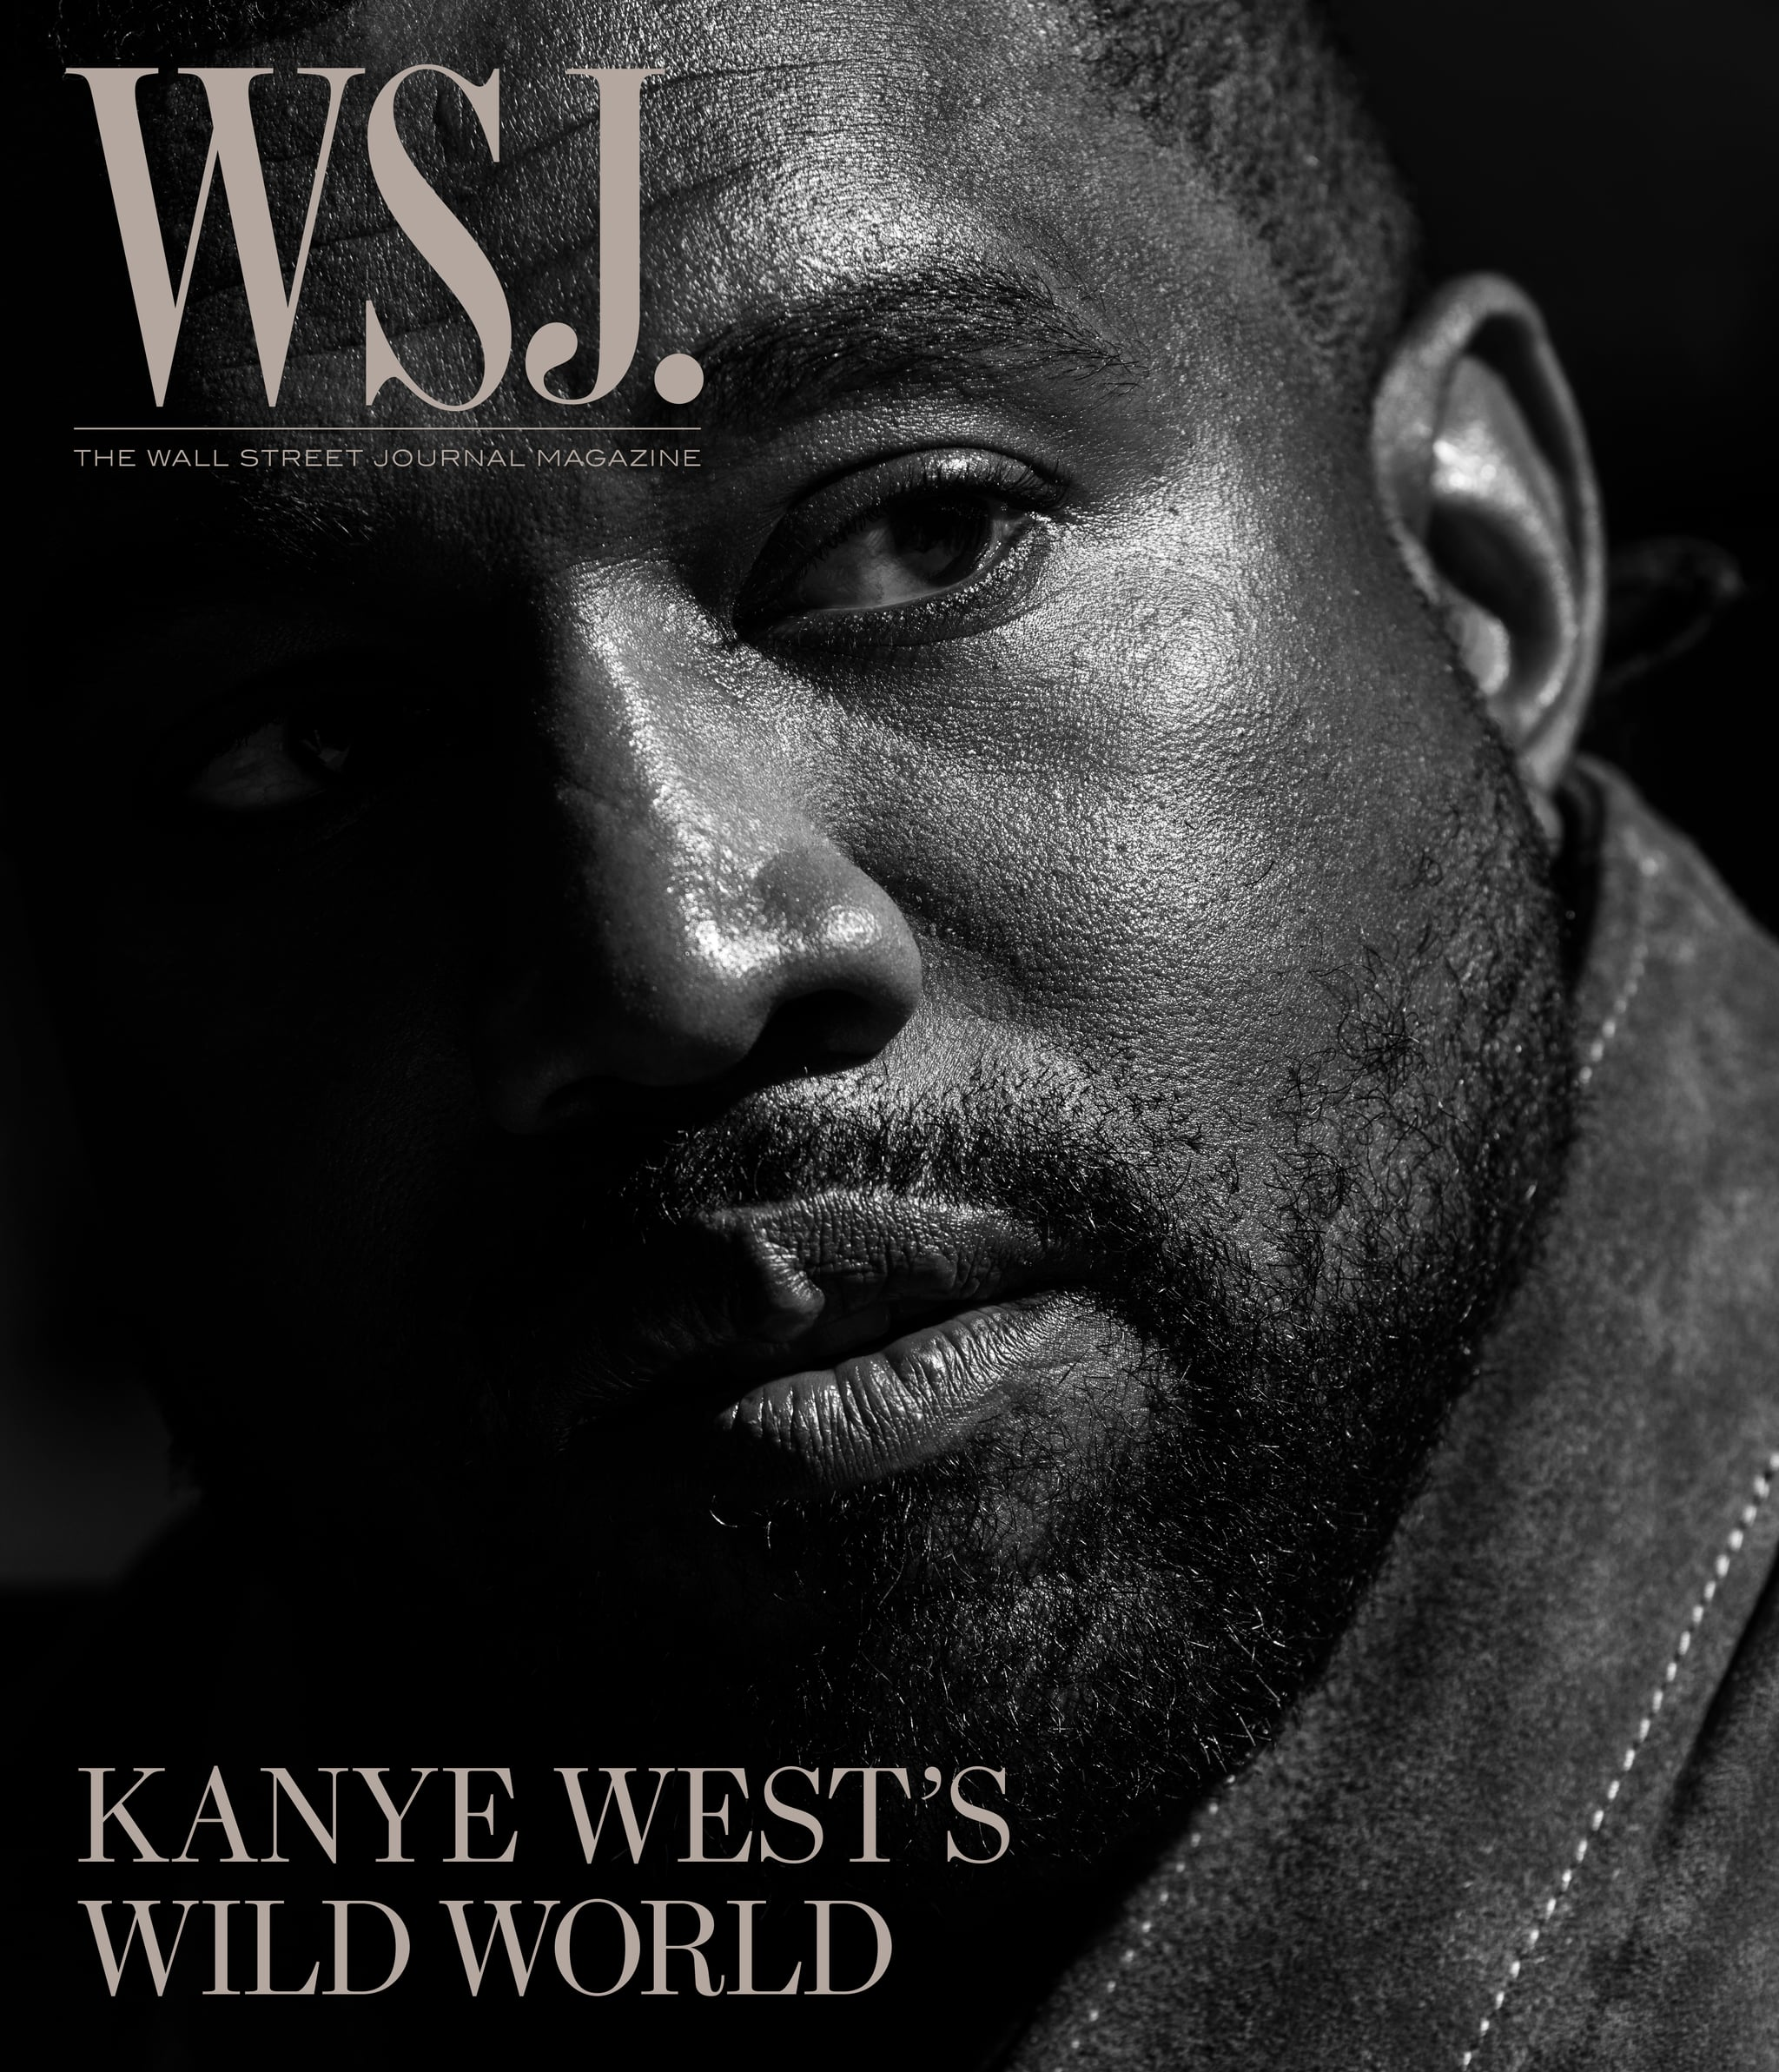 Kanye West Talks About His Yeezy Collection In Wsj Magazine Popsugar Fashion